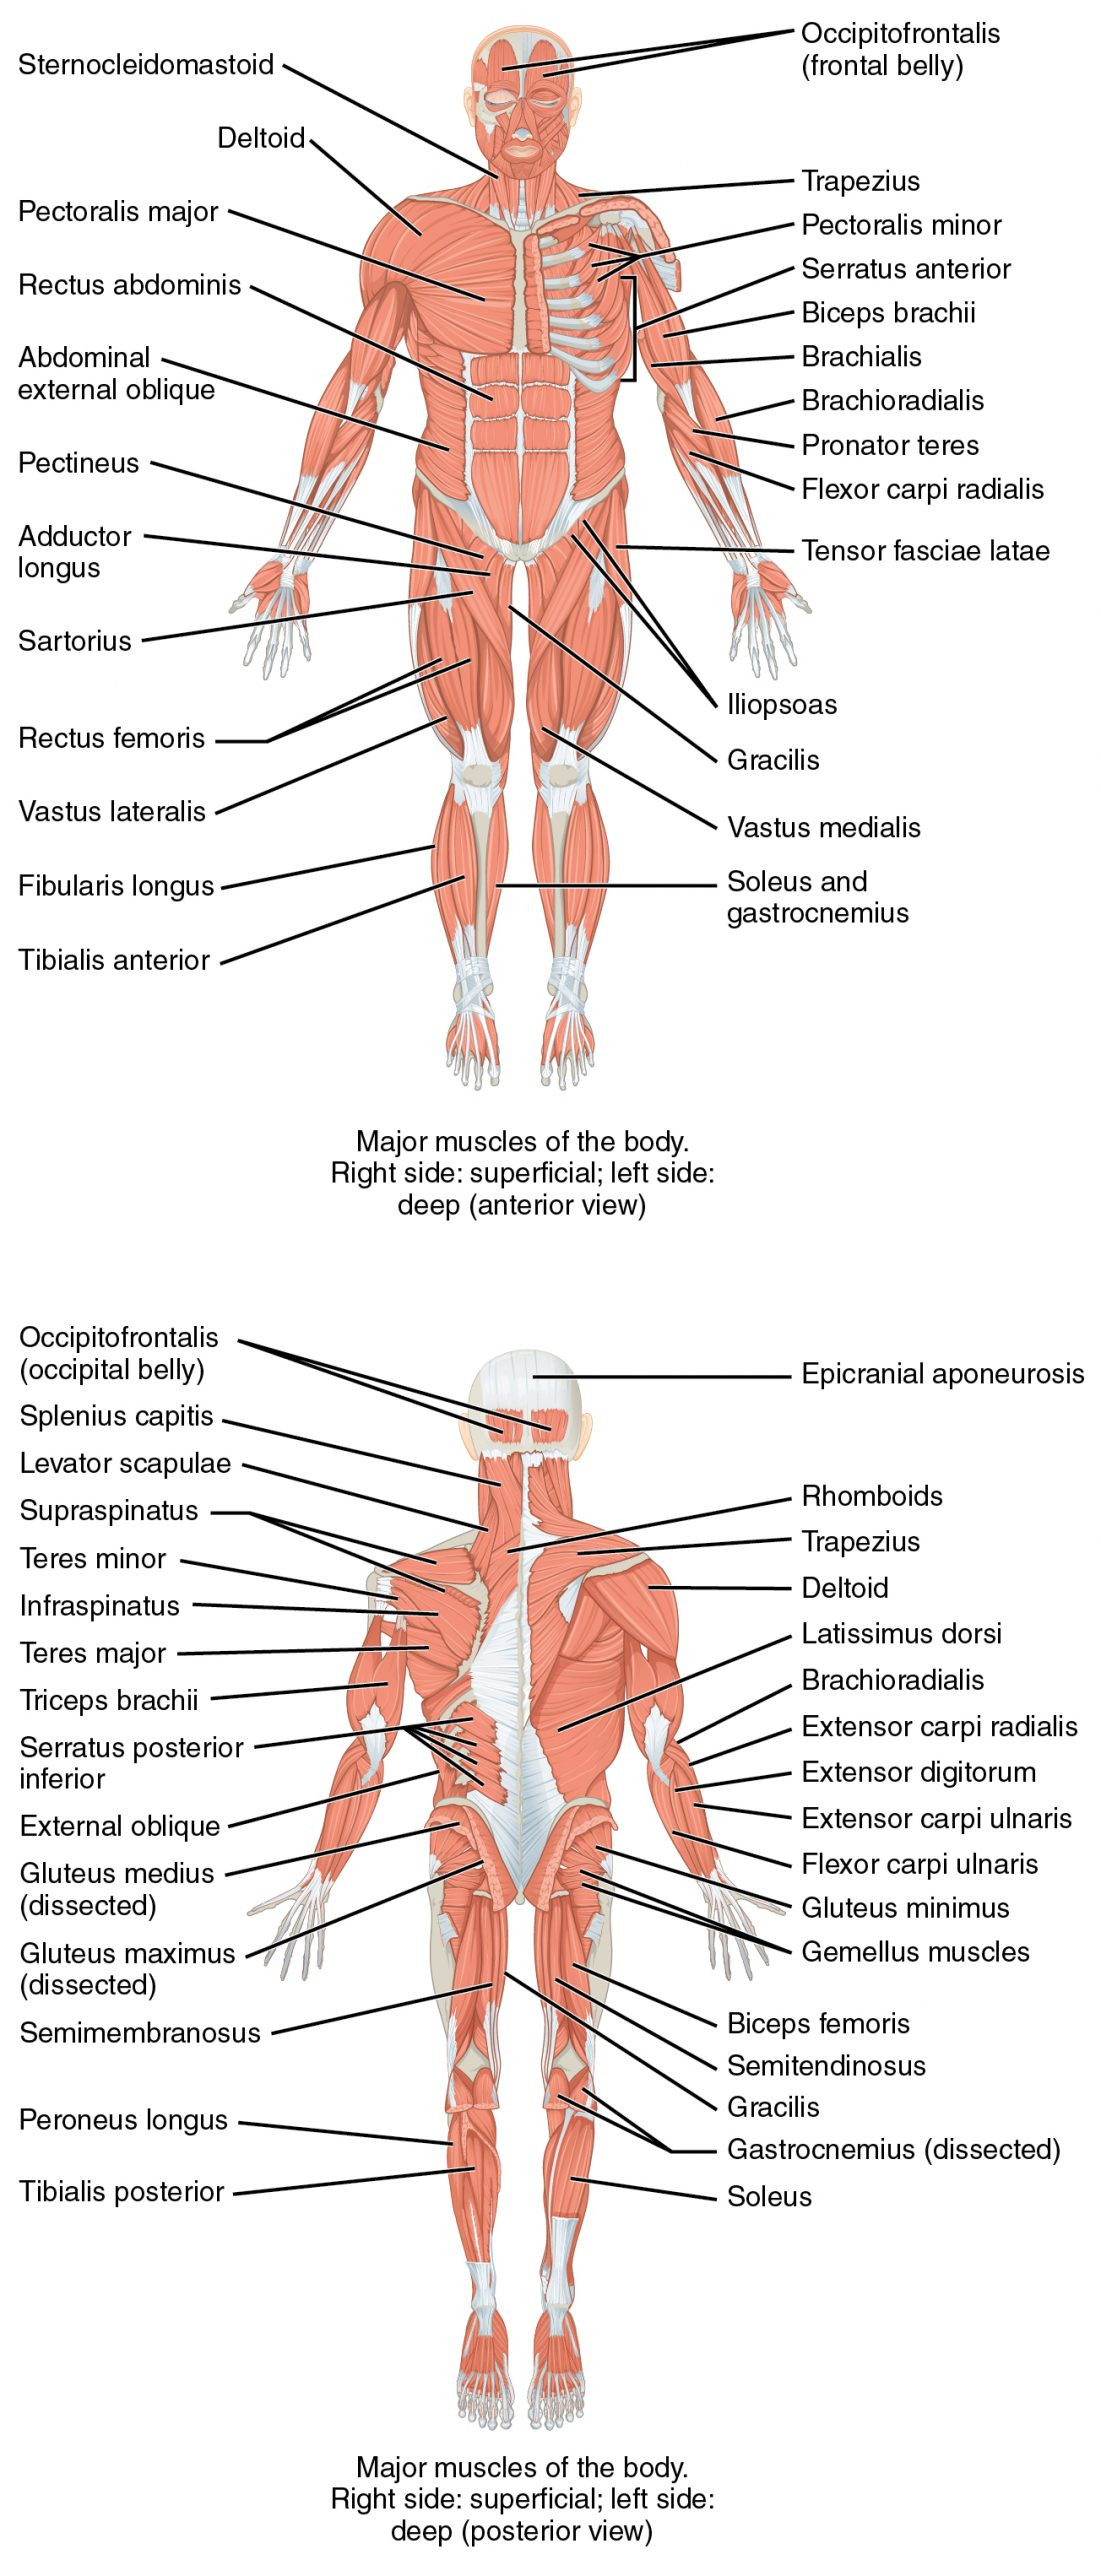 Printable Muscle Diagram Excelent Anatomyoring Pages Muscles Image Inspirations